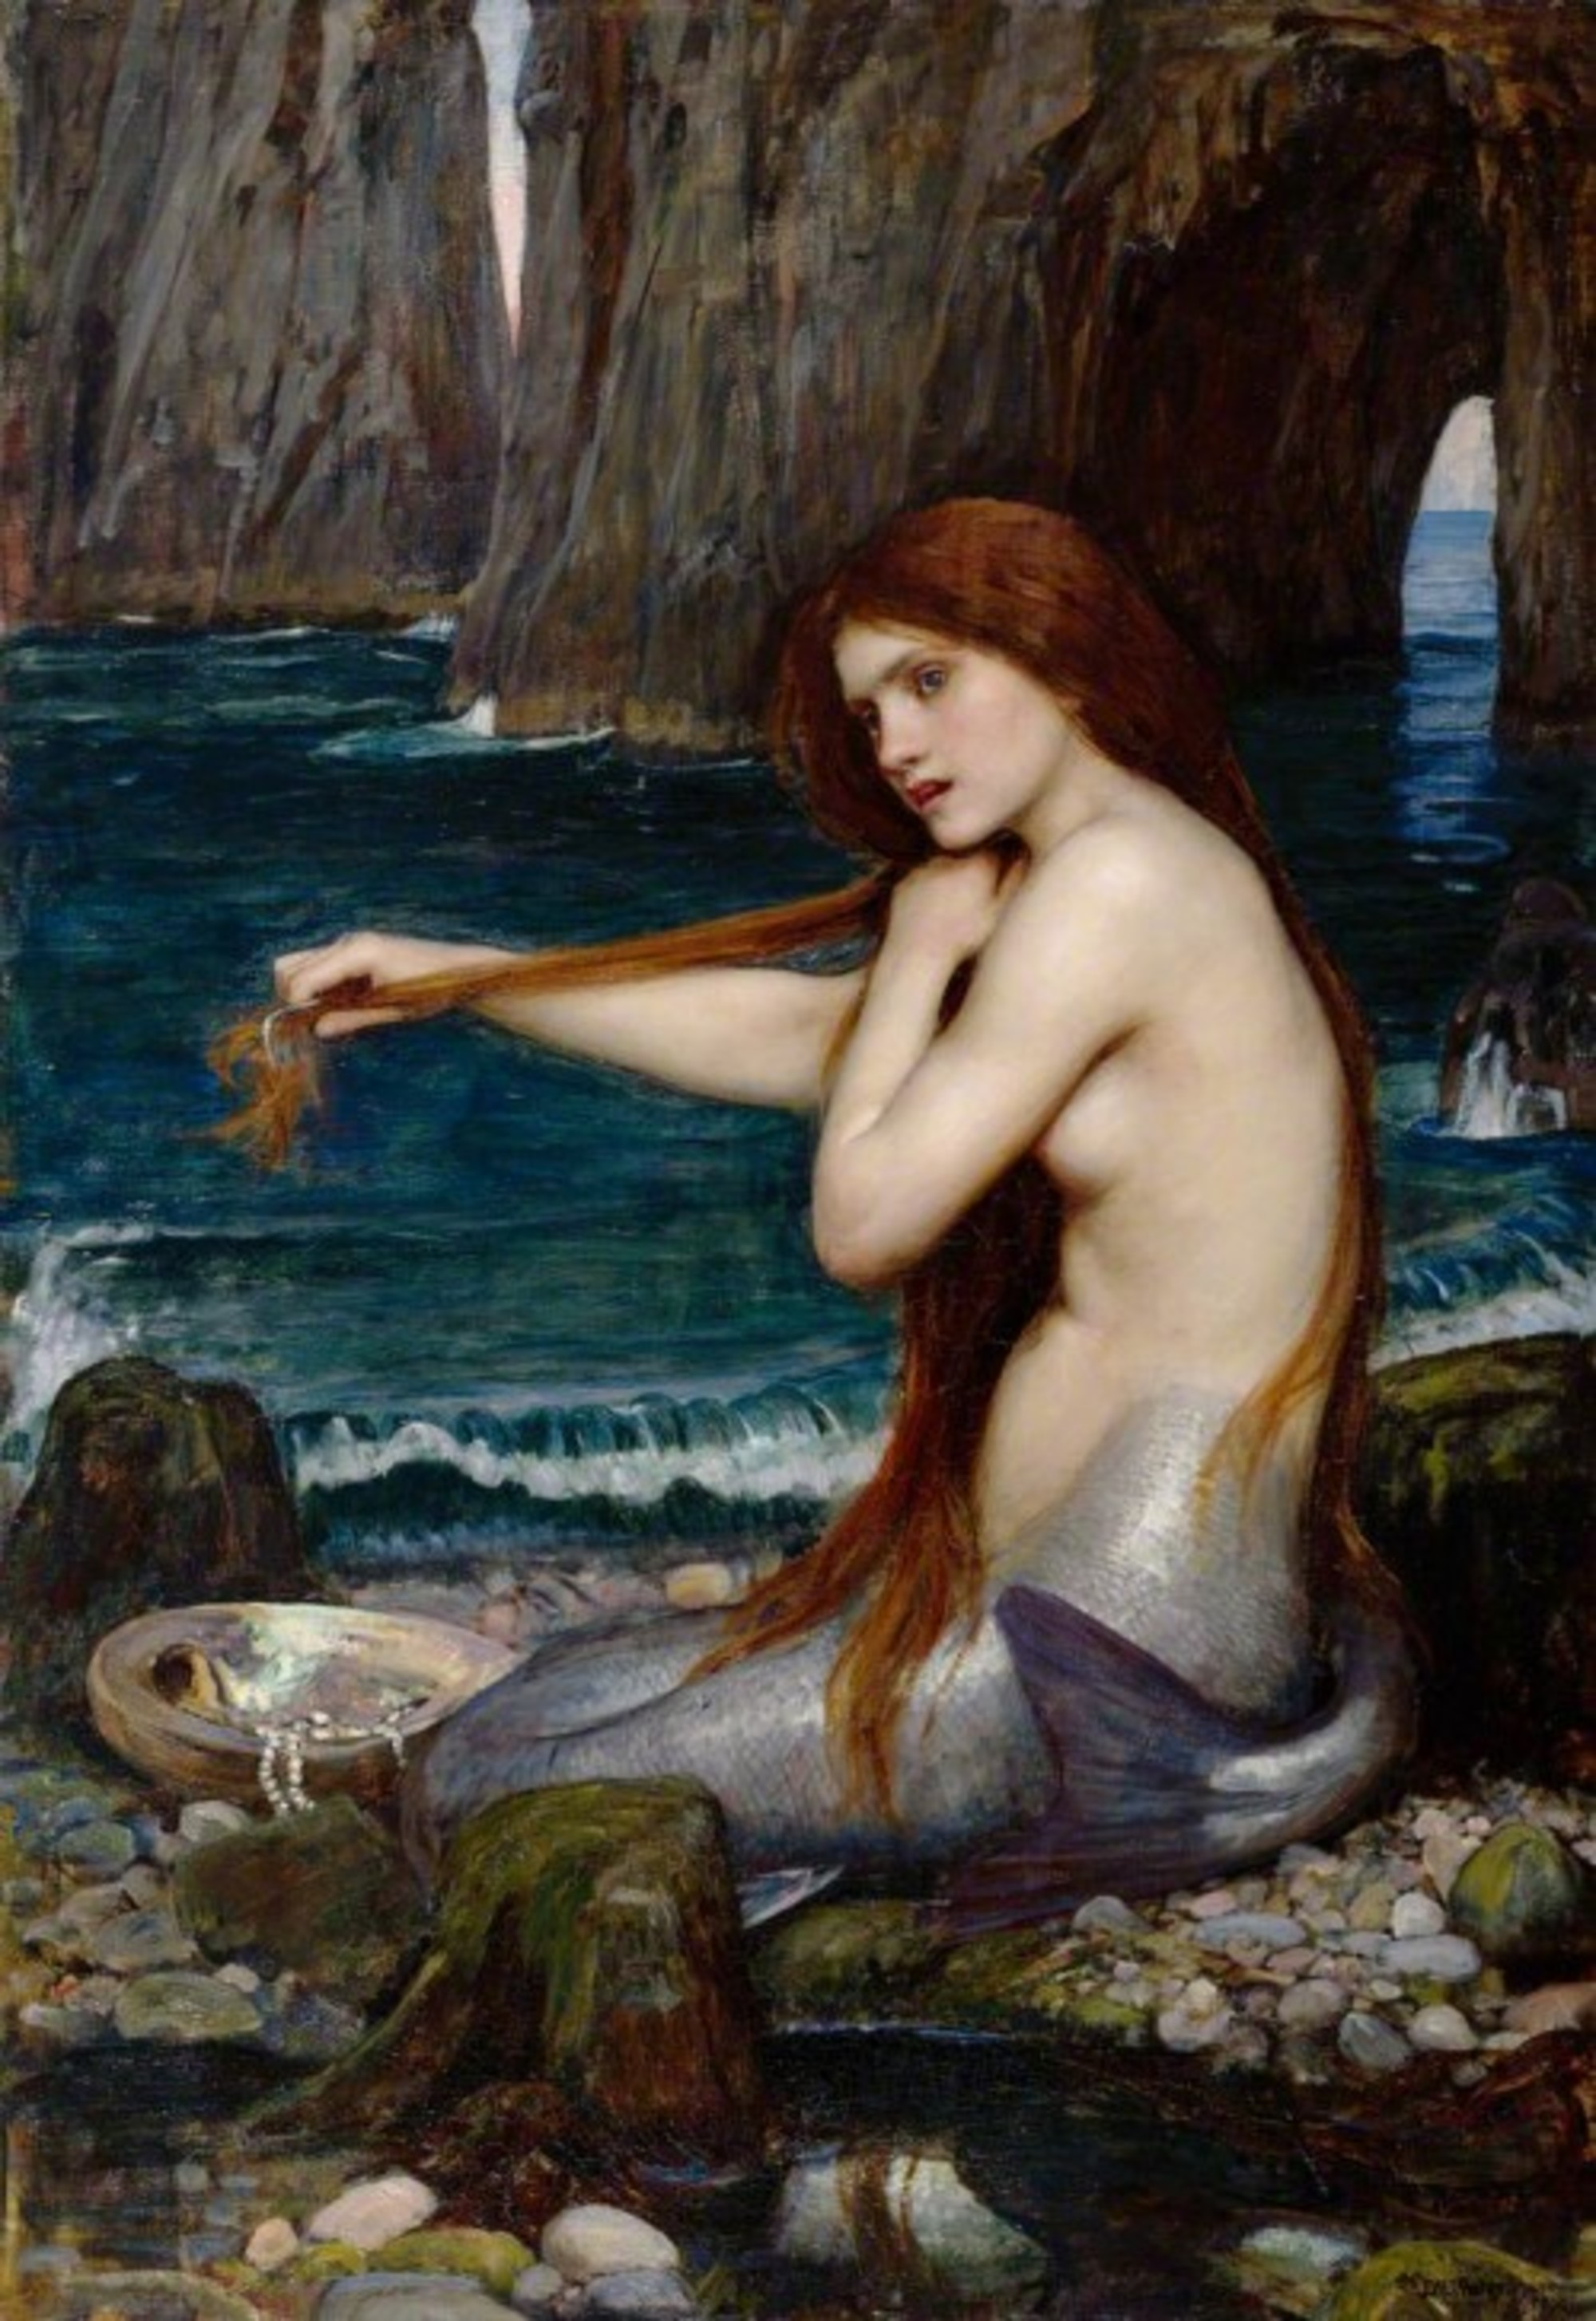 John_William_Waterhouse_A_Mermaid.jpg